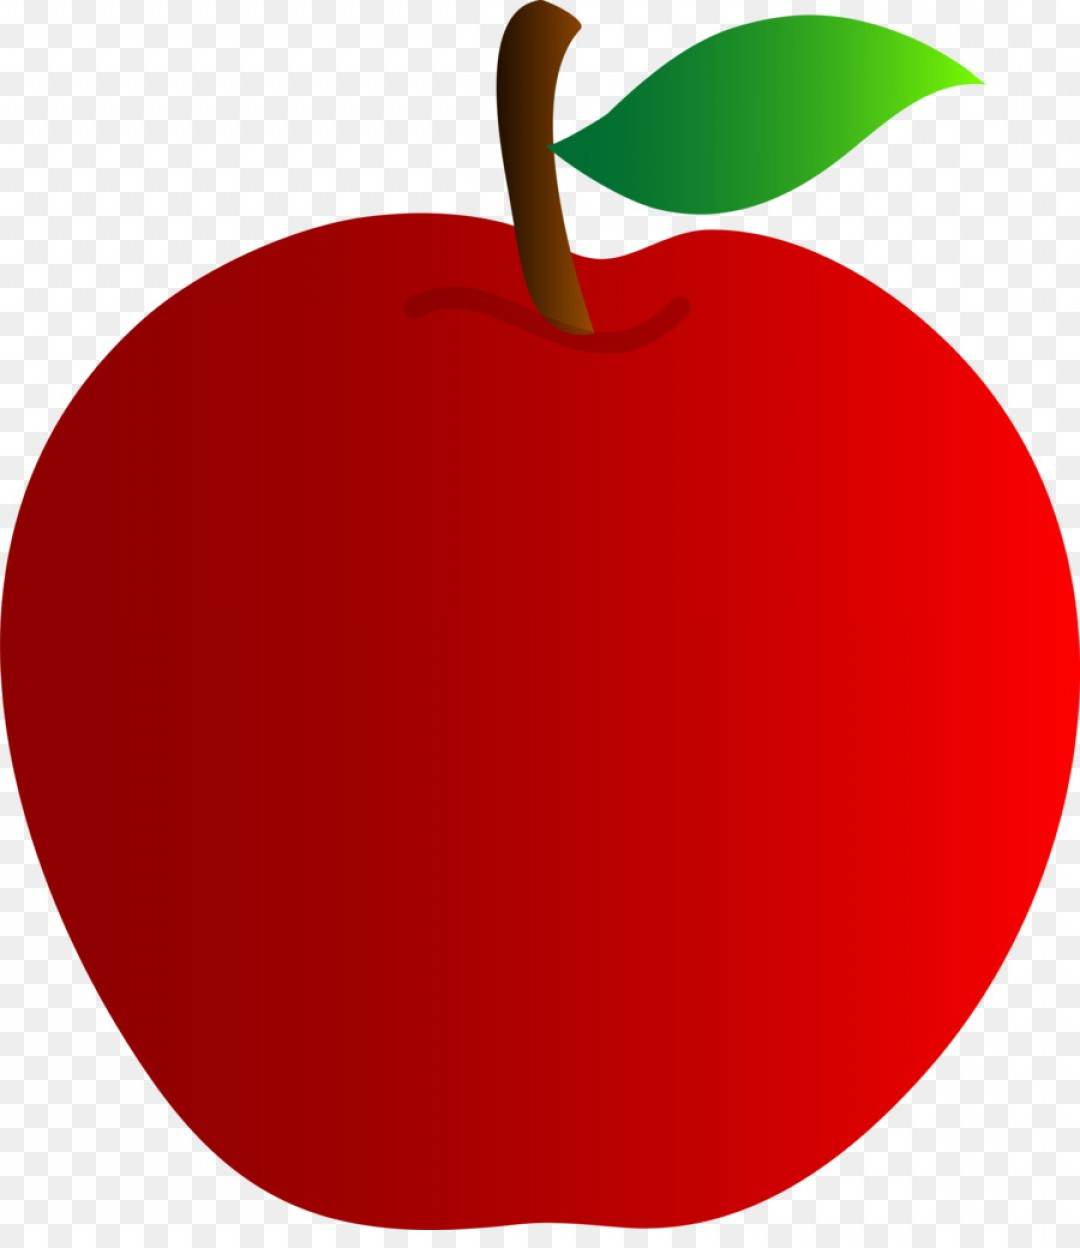 Apple clipart.